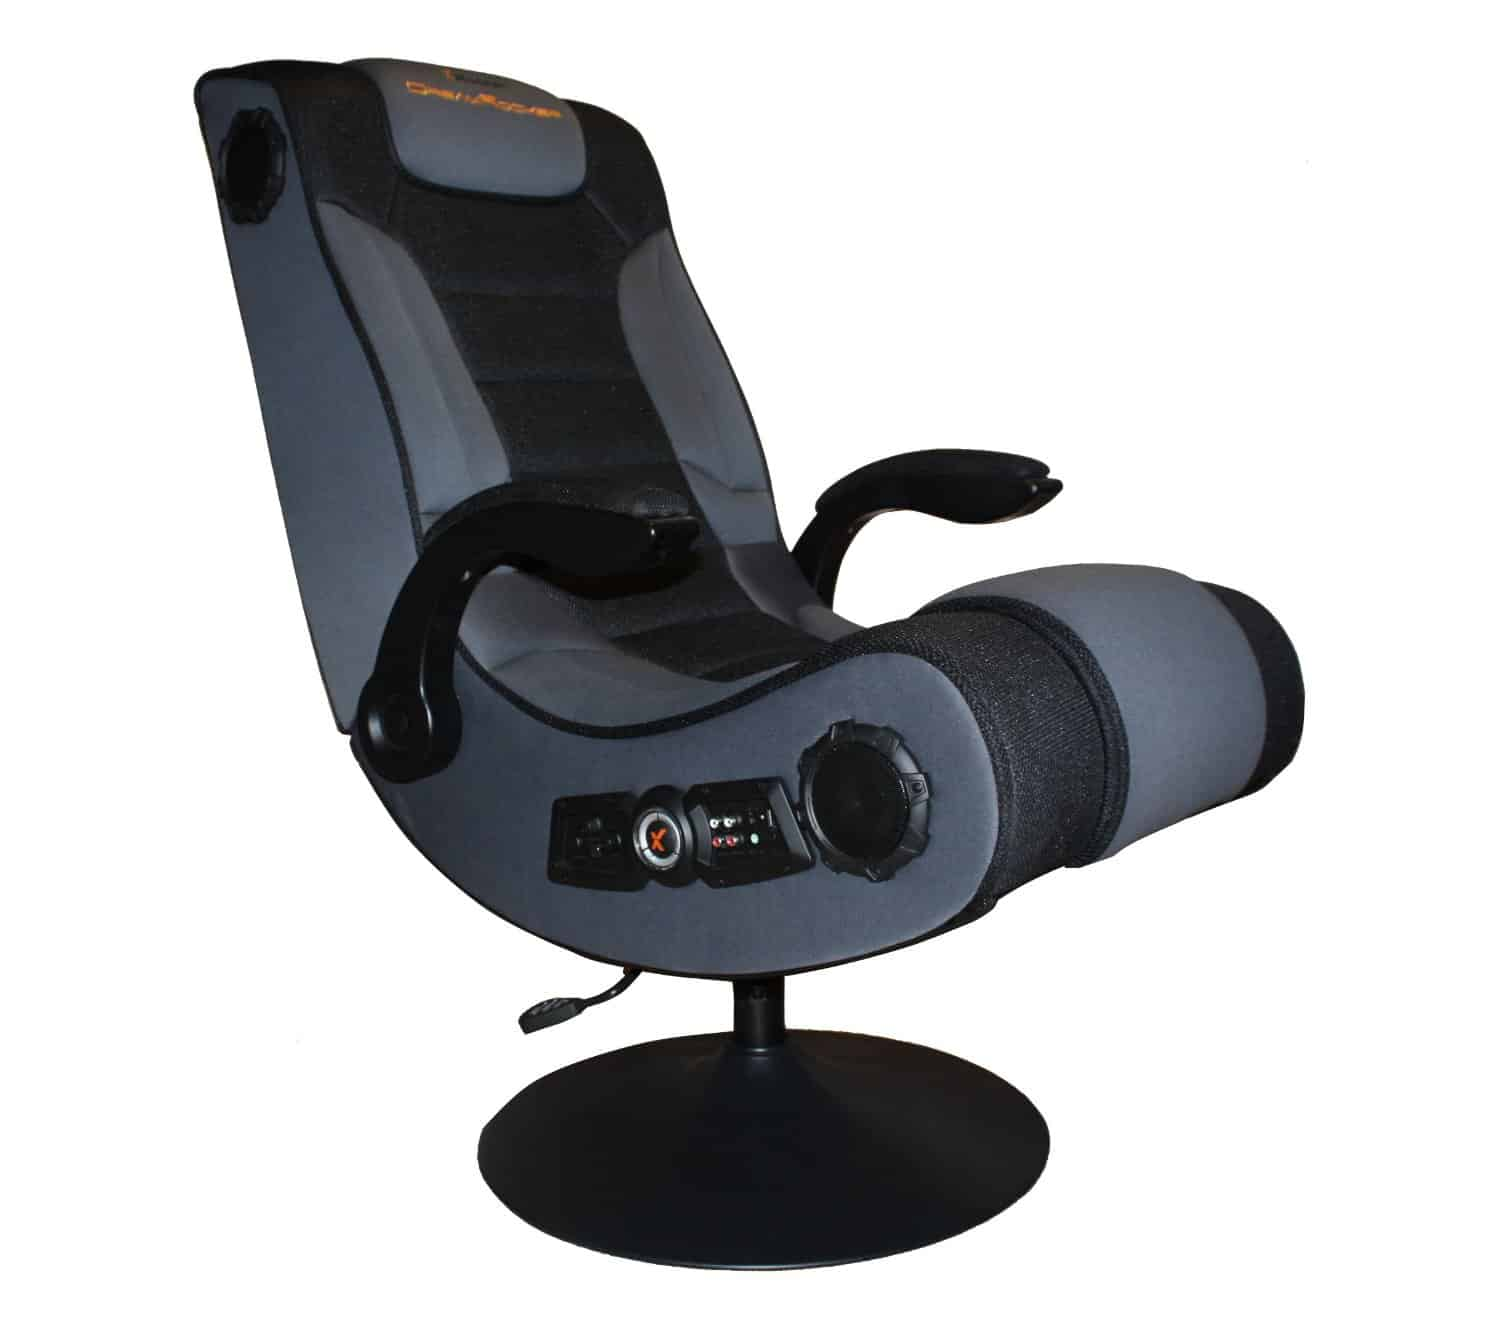 x dream rocker ultra 4 1 bluetooth gaming chair review. Black Bedroom Furniture Sets. Home Design Ideas